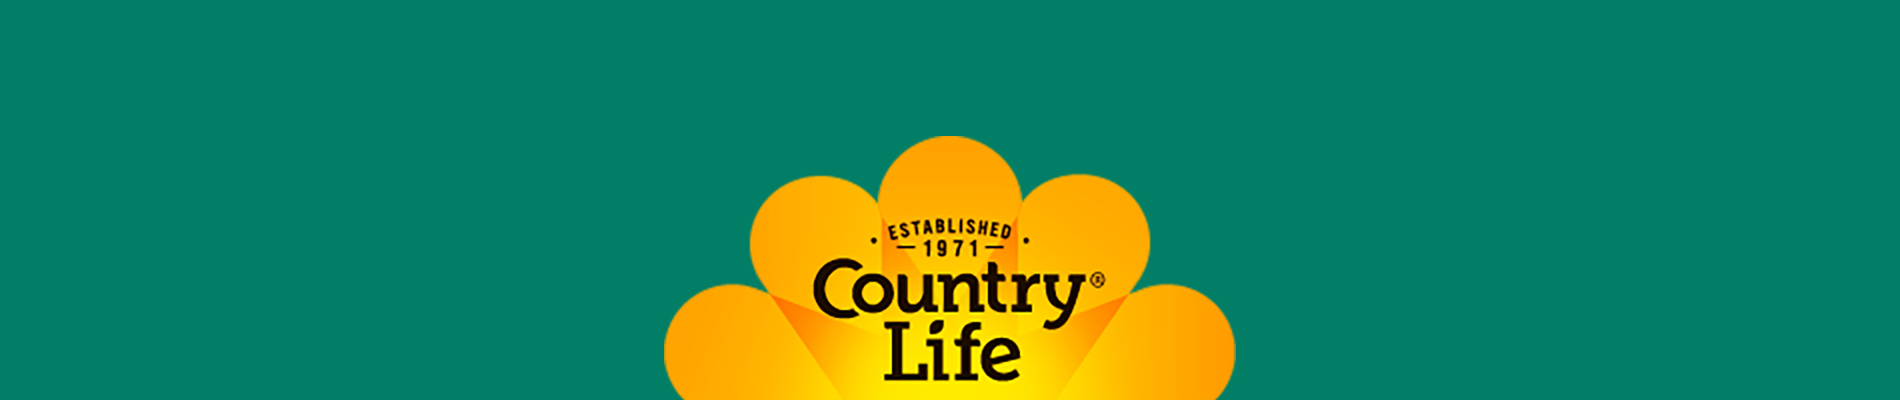 Country Life Vitamins Celebrates Everyday Heroes with the Launch of The Great List